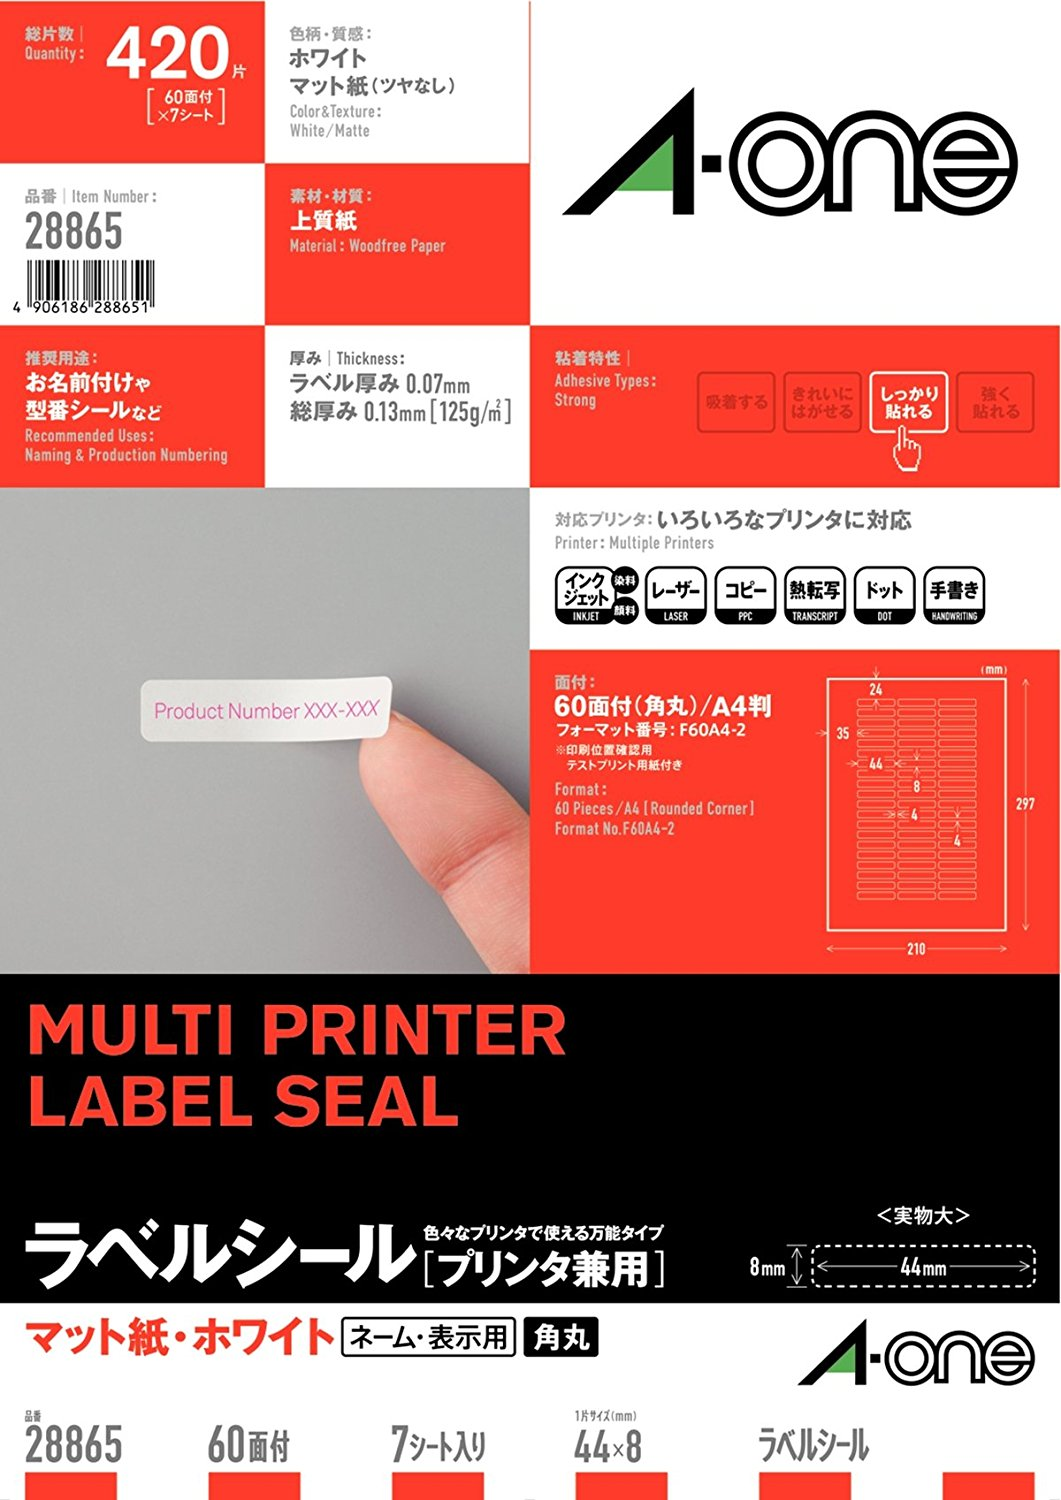 -One (A-one) label seal [printer combined use] Matte Paper White A4 60 7 seat face margin four sides with rounded corners (420 pieces) 28865 (japan import)